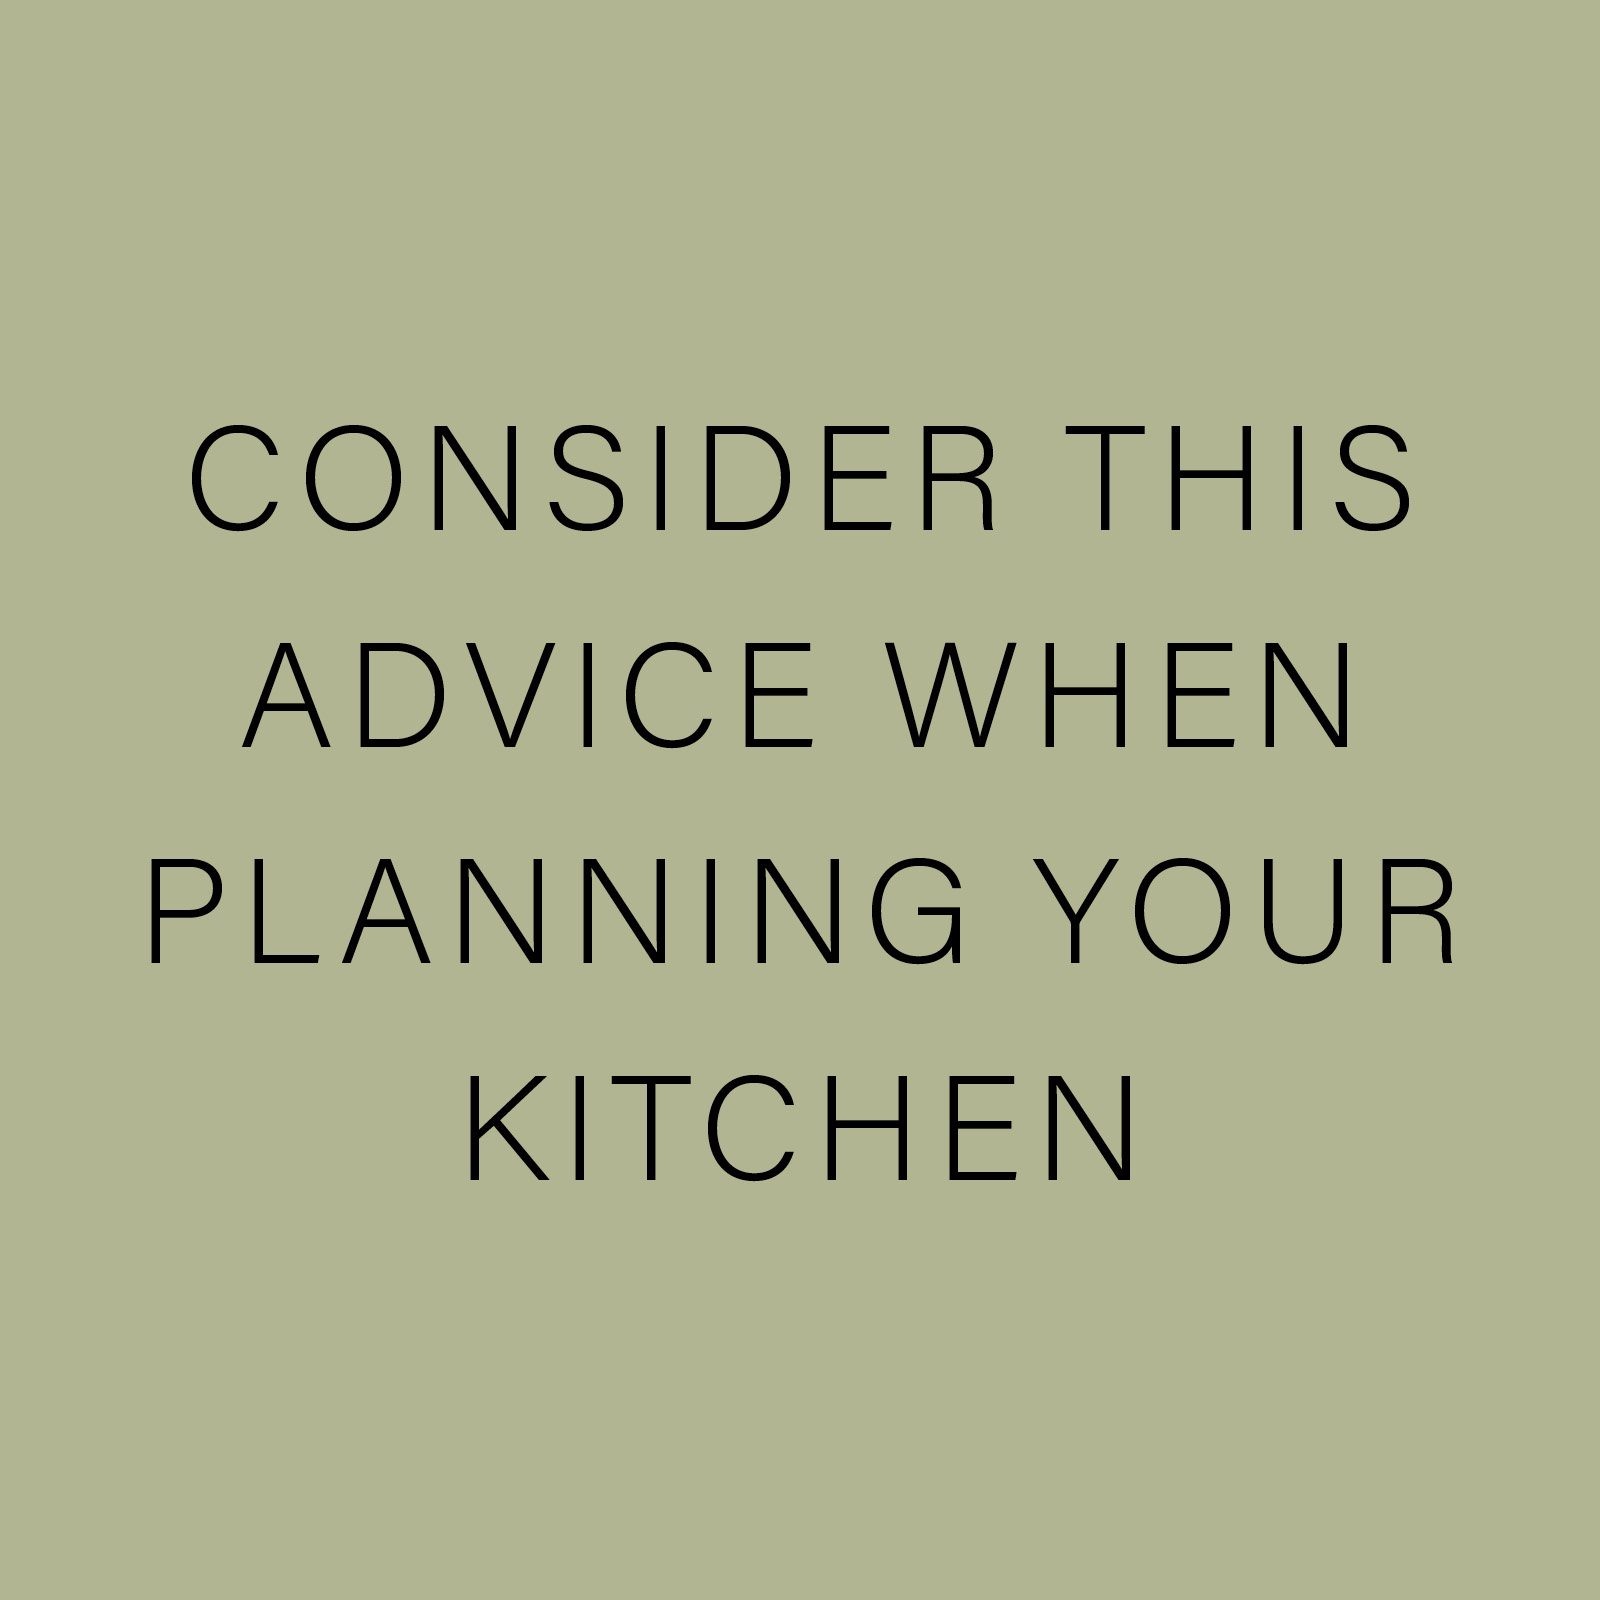 CONSIDER THIS ADVICE WHEN PLANNING YOUR KITCHEN.jpg